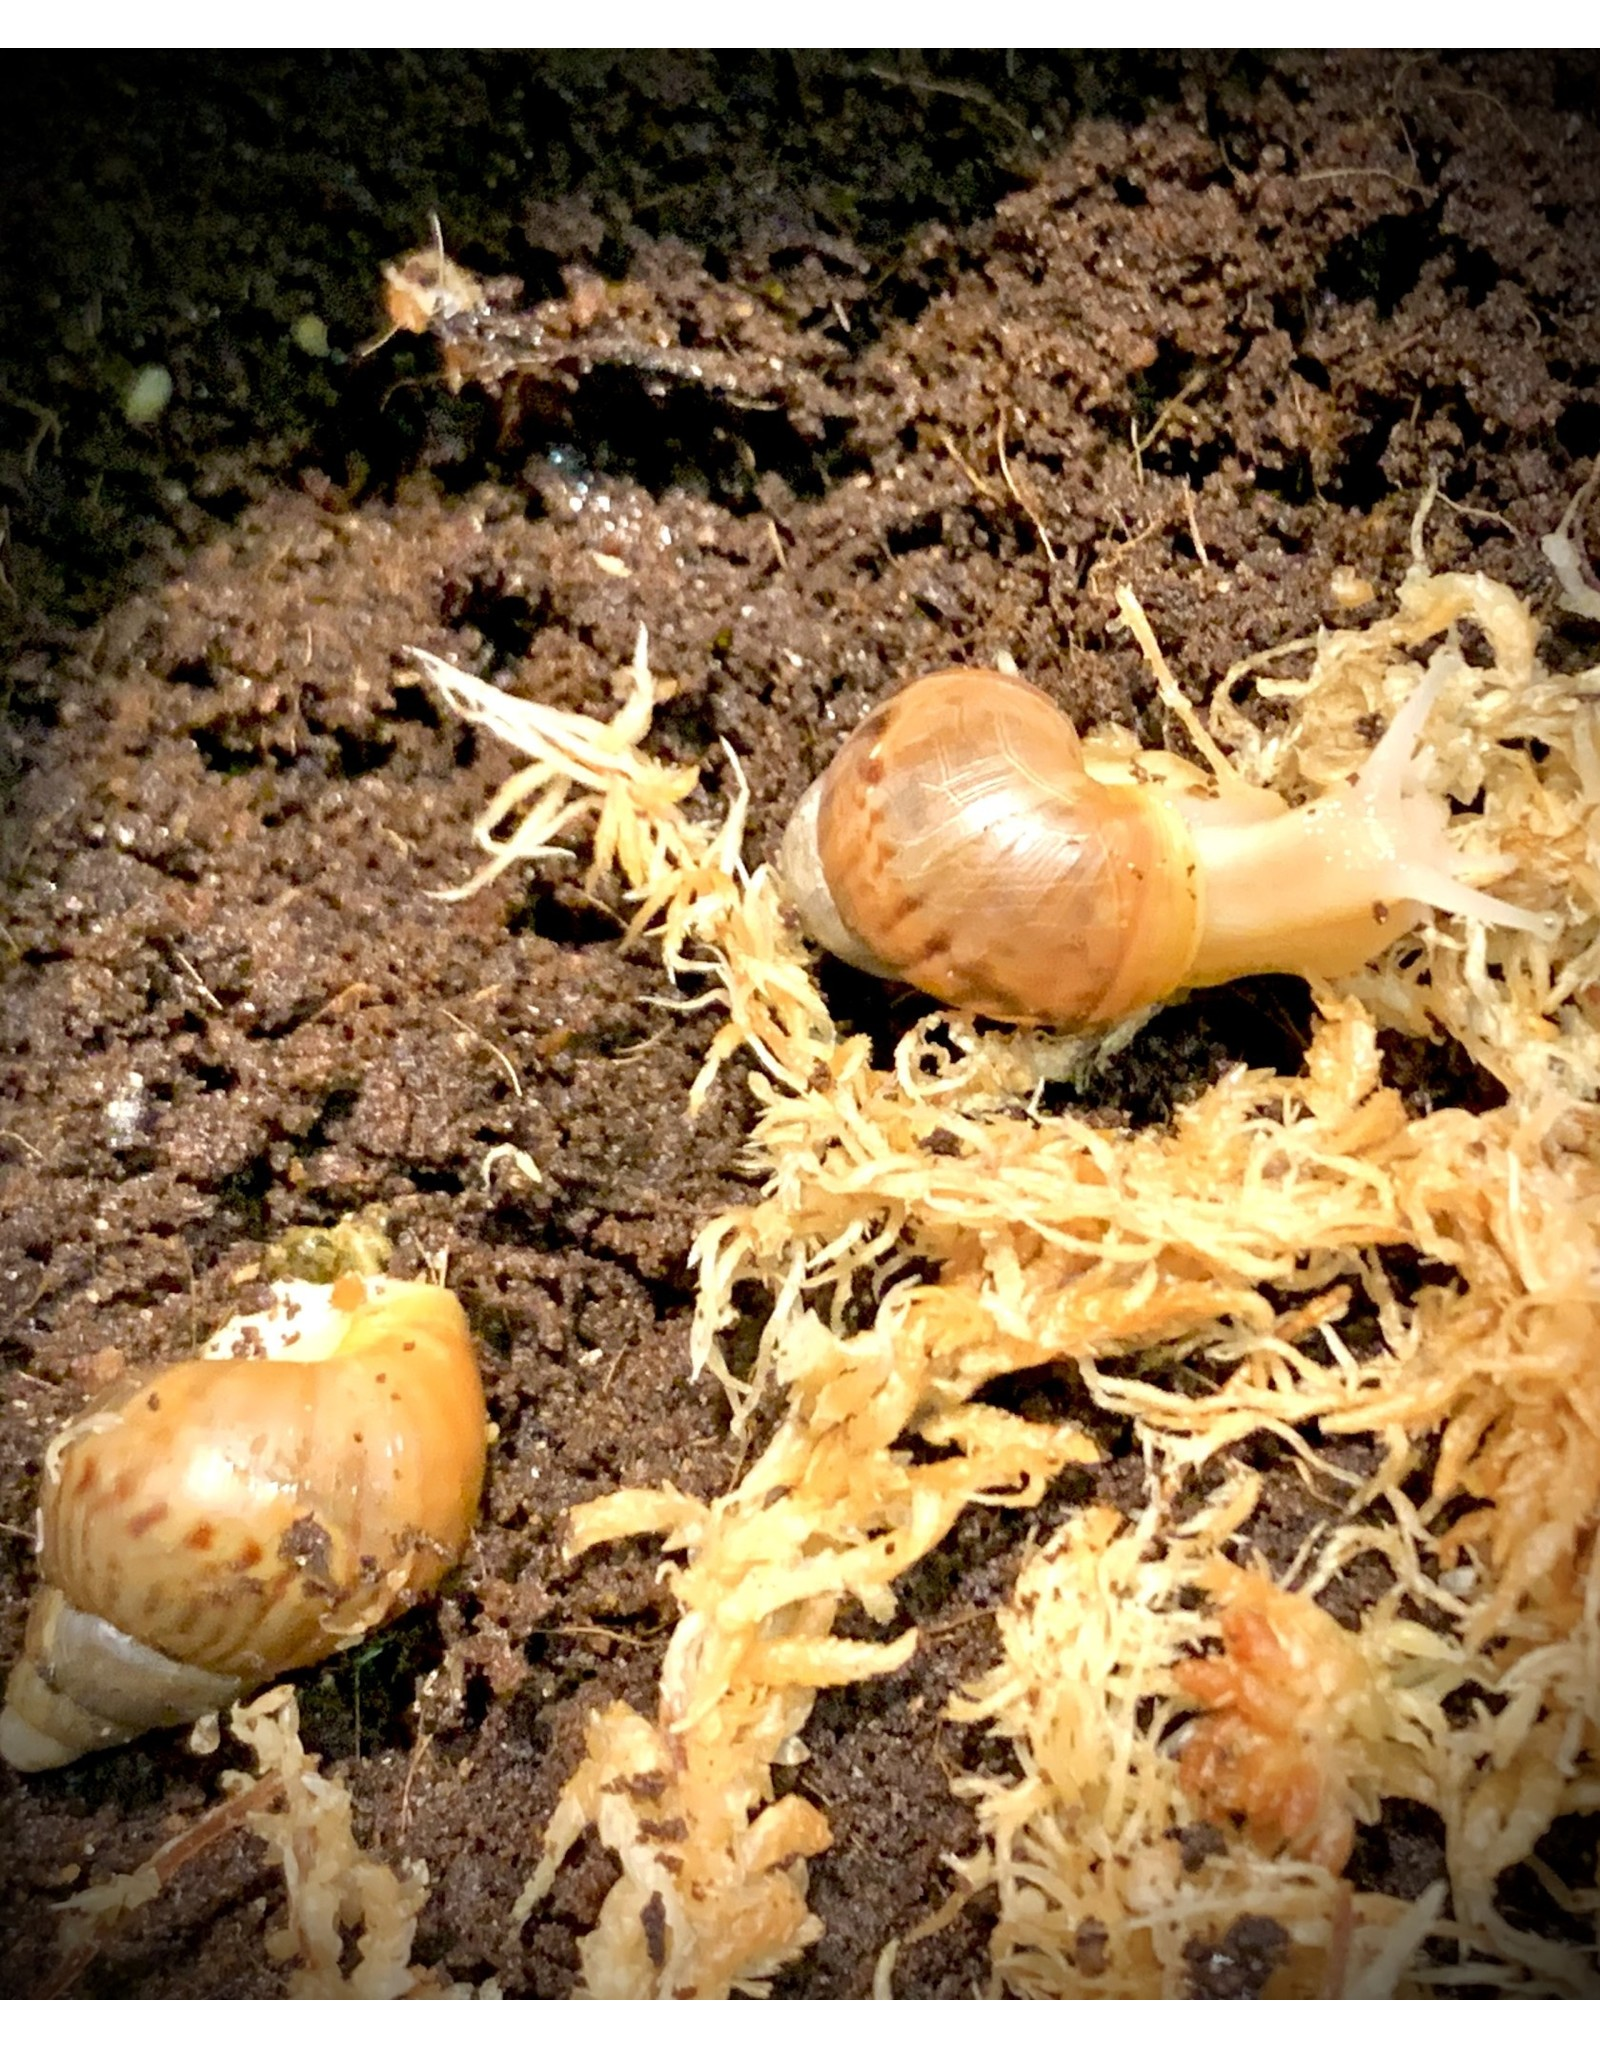 Angell Pets African Land Snail (Achatina fulica)